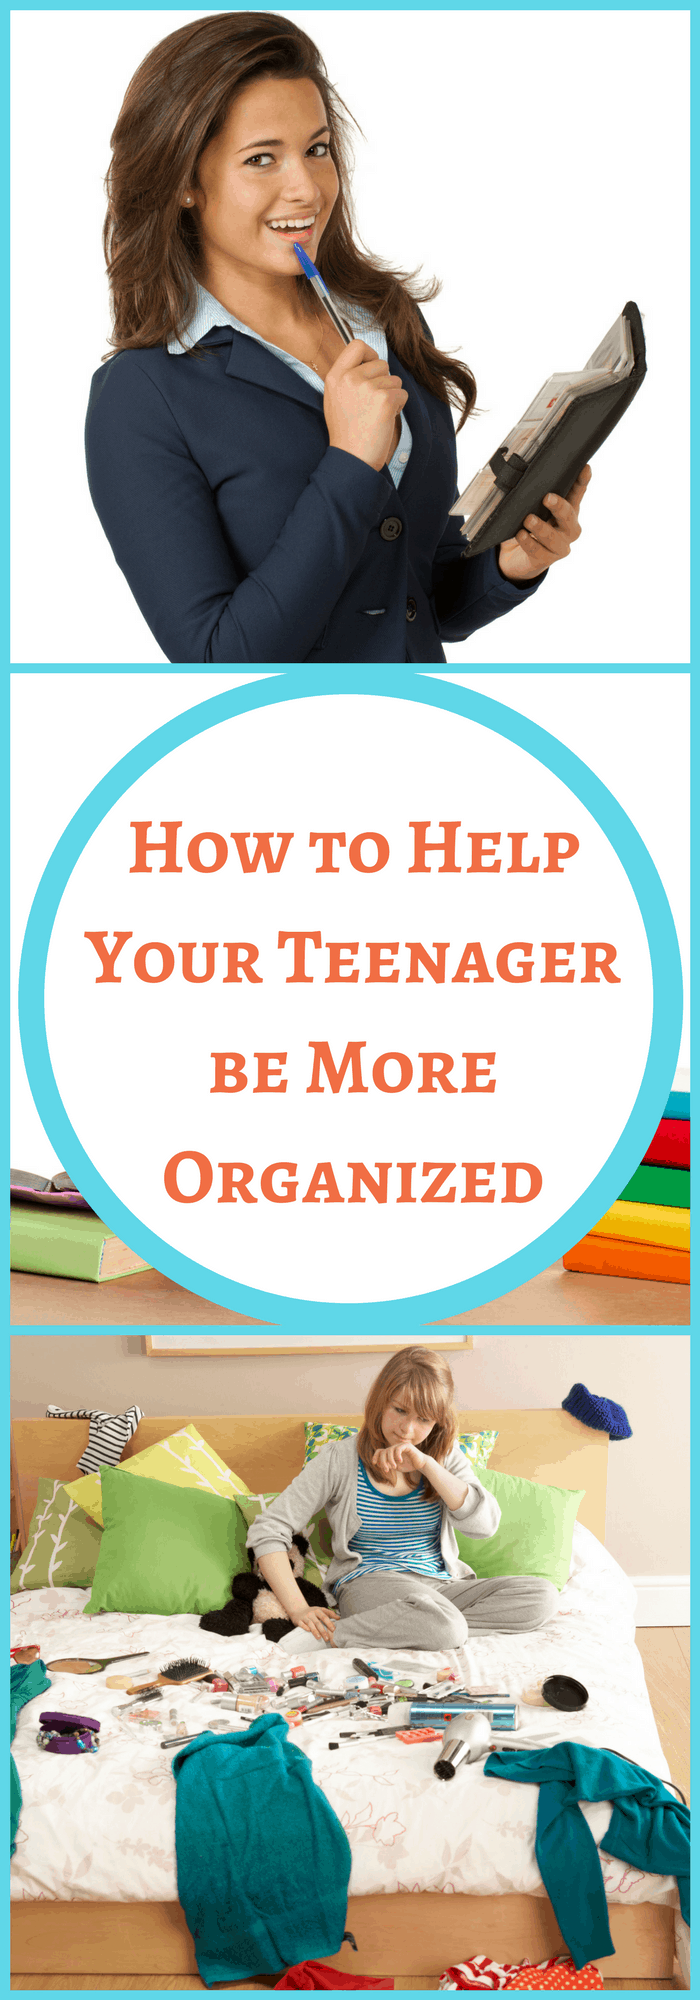 How To Help Your Teenager Be More Organized The